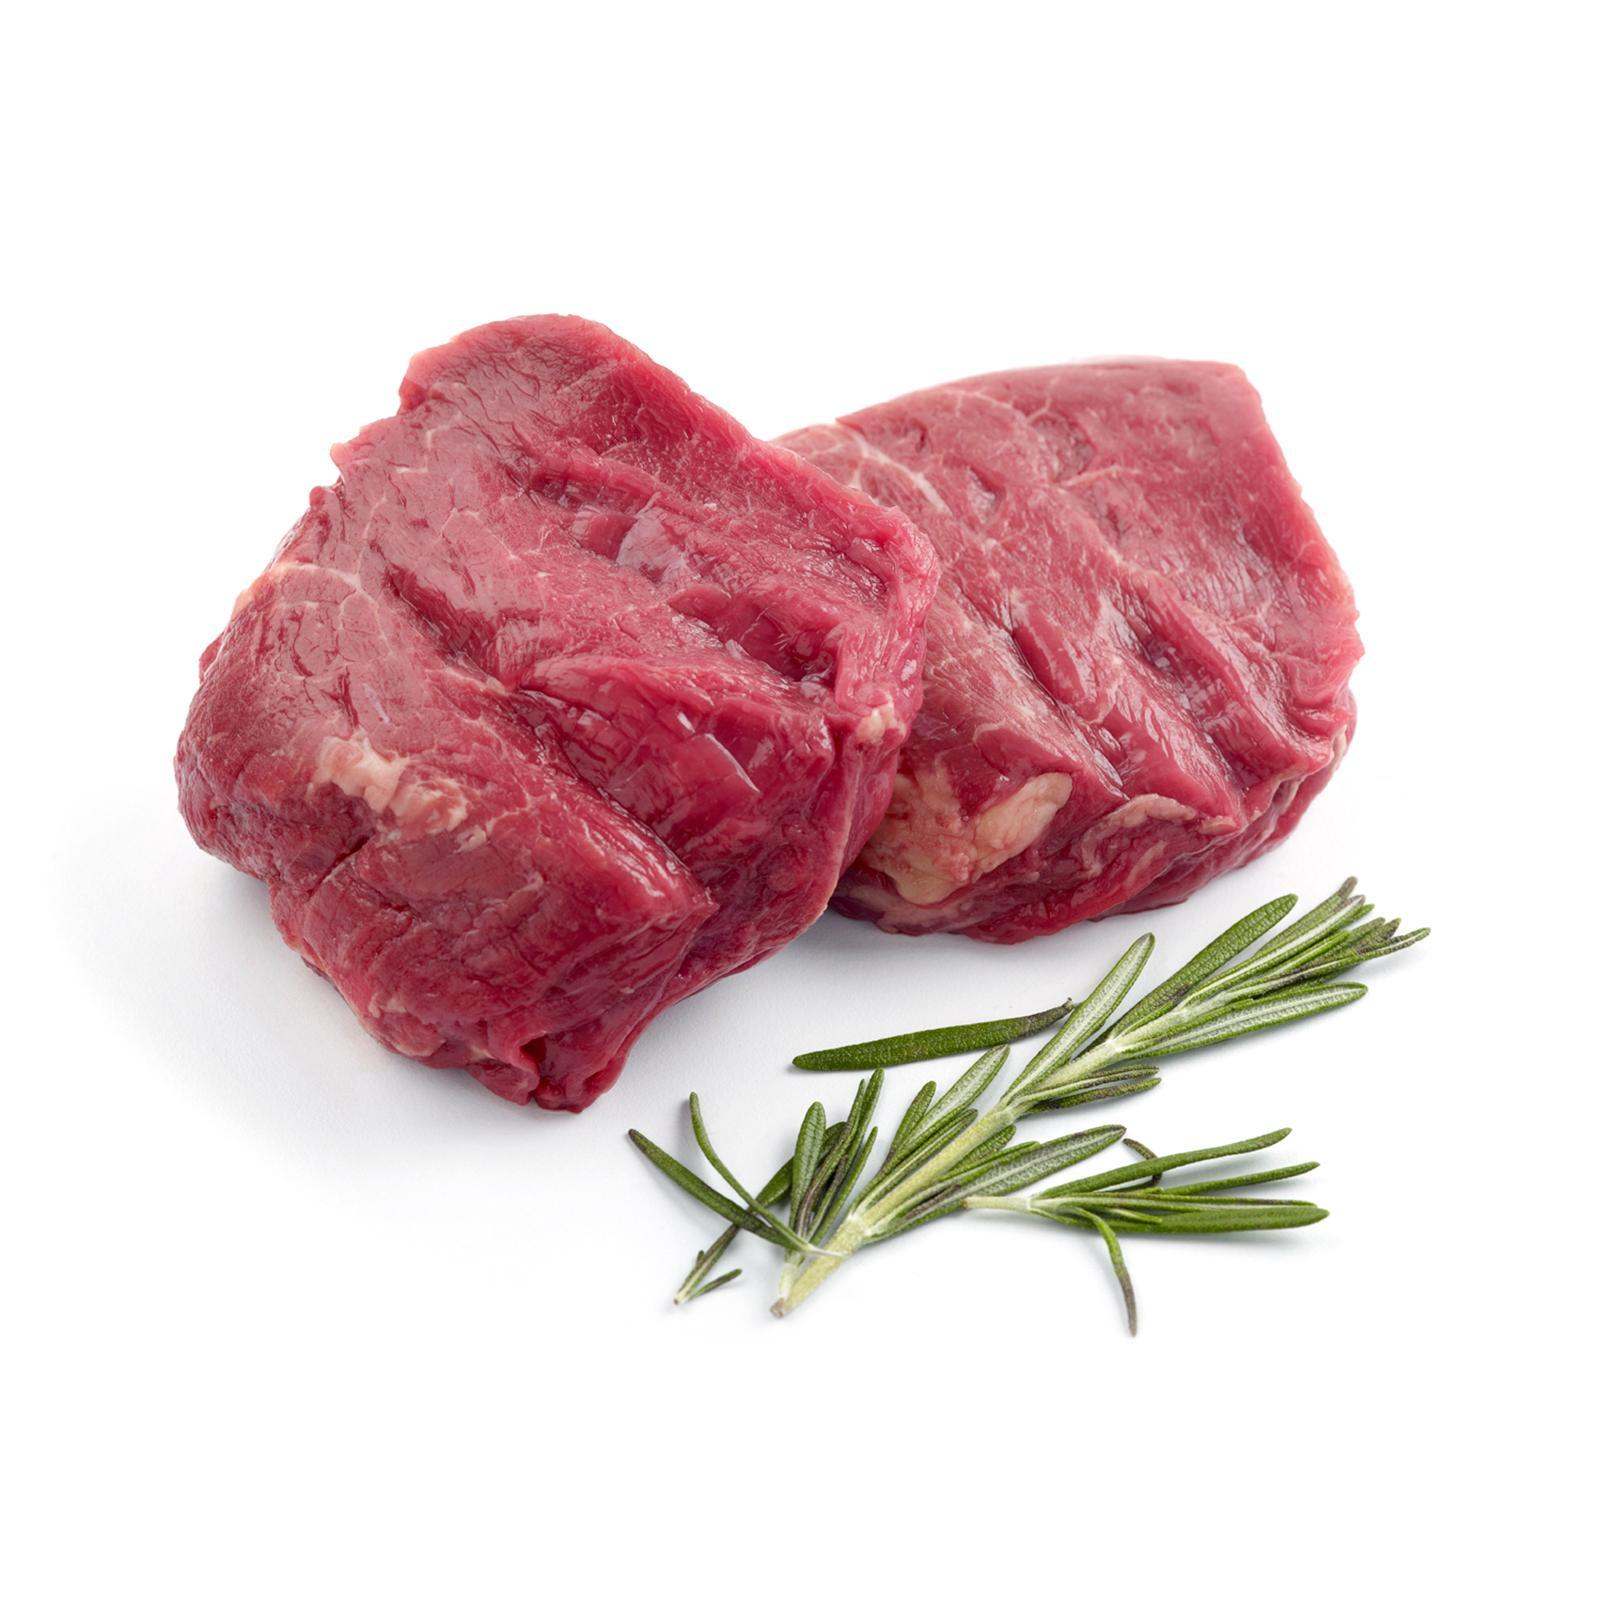 ZAC Butchery Grass-Fed Beef Tenderloin Pack